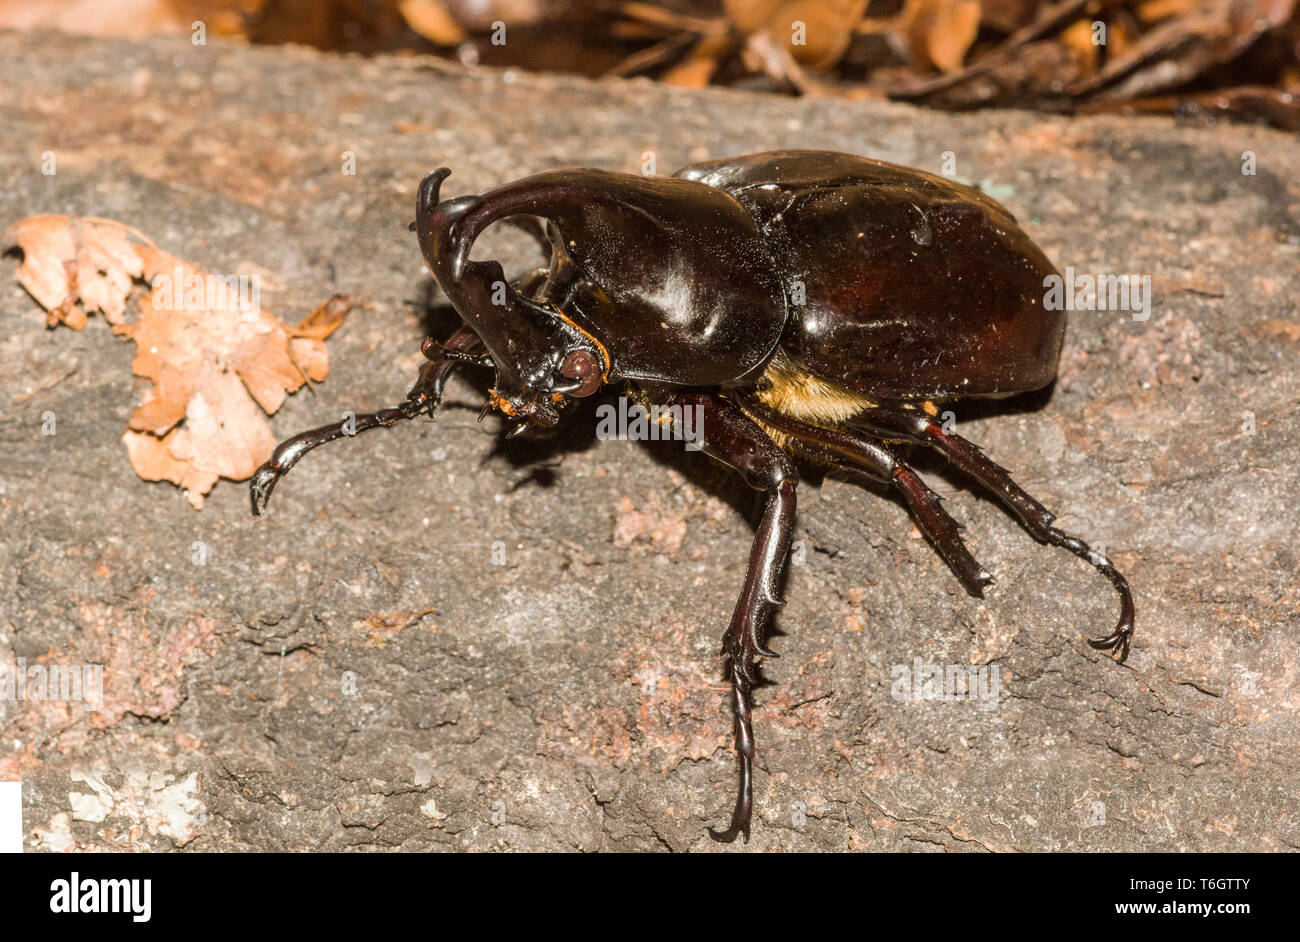 Rhinoceros Beetle (Xylotrupes gideon). This beetle was photographed at Stockholm Zoo.Sweden. - Stock Image